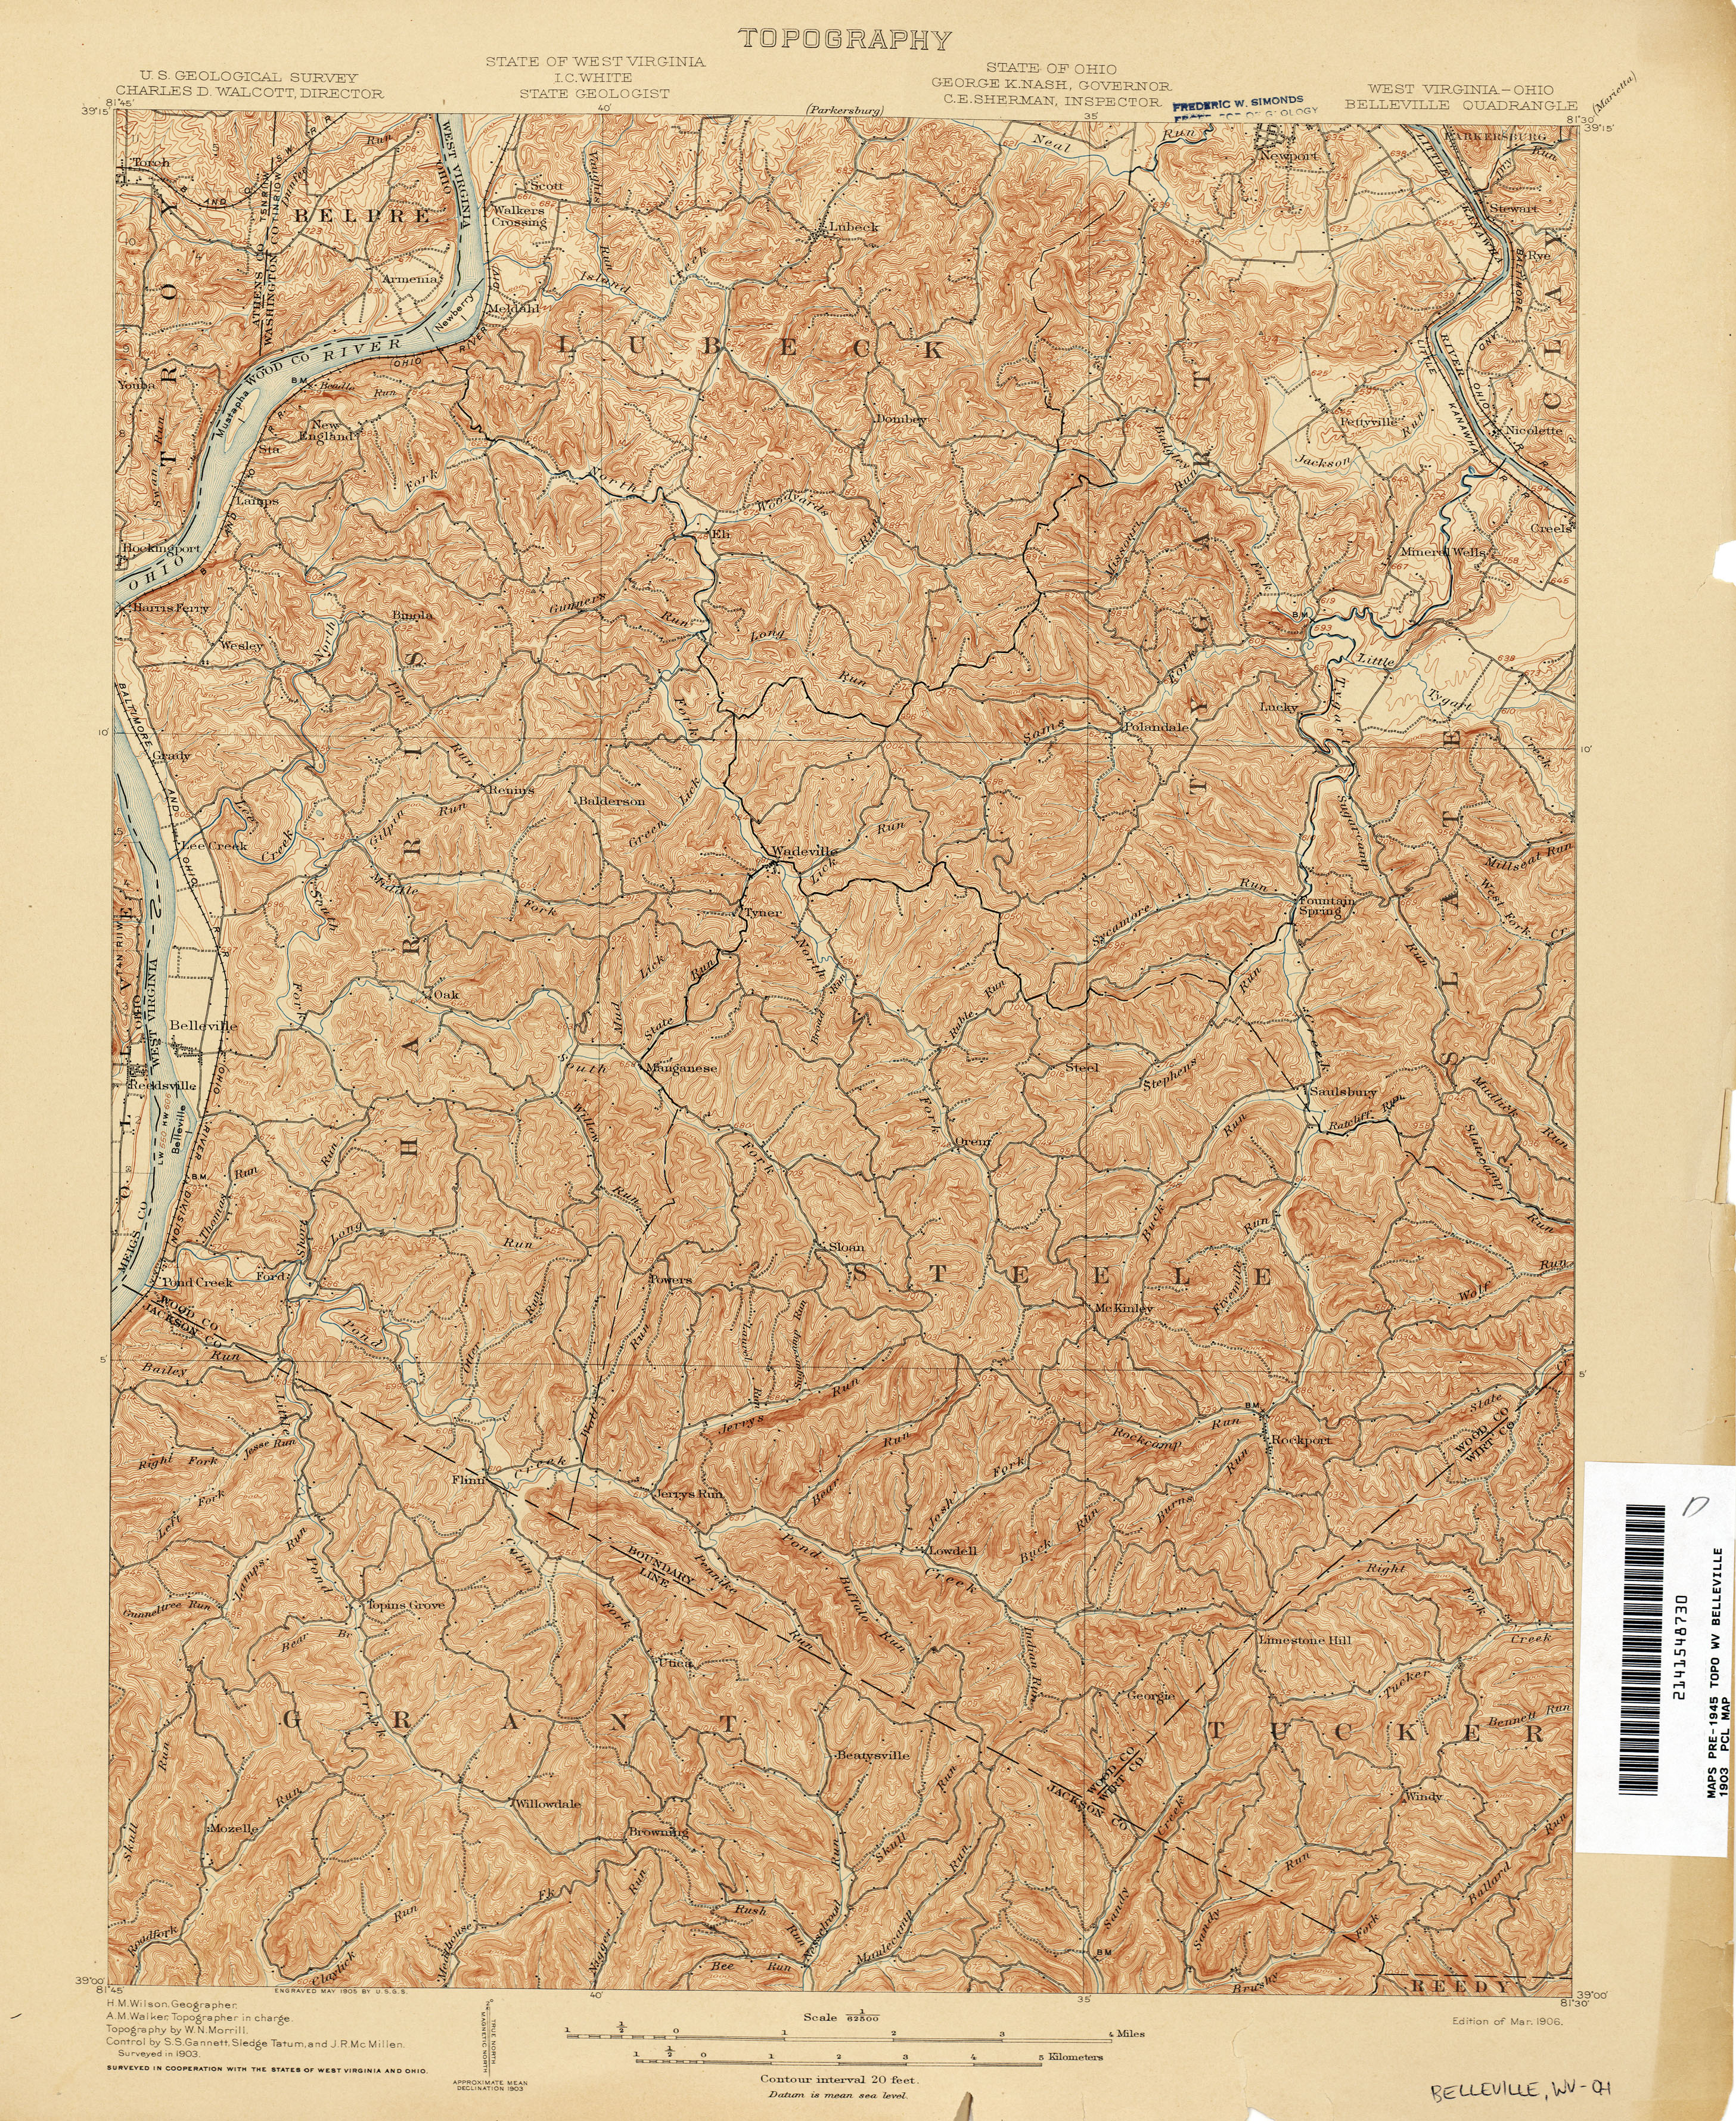 West Virginia Historical Topographic Maps PerryCastañeda Map - Map of west virginia and ohio